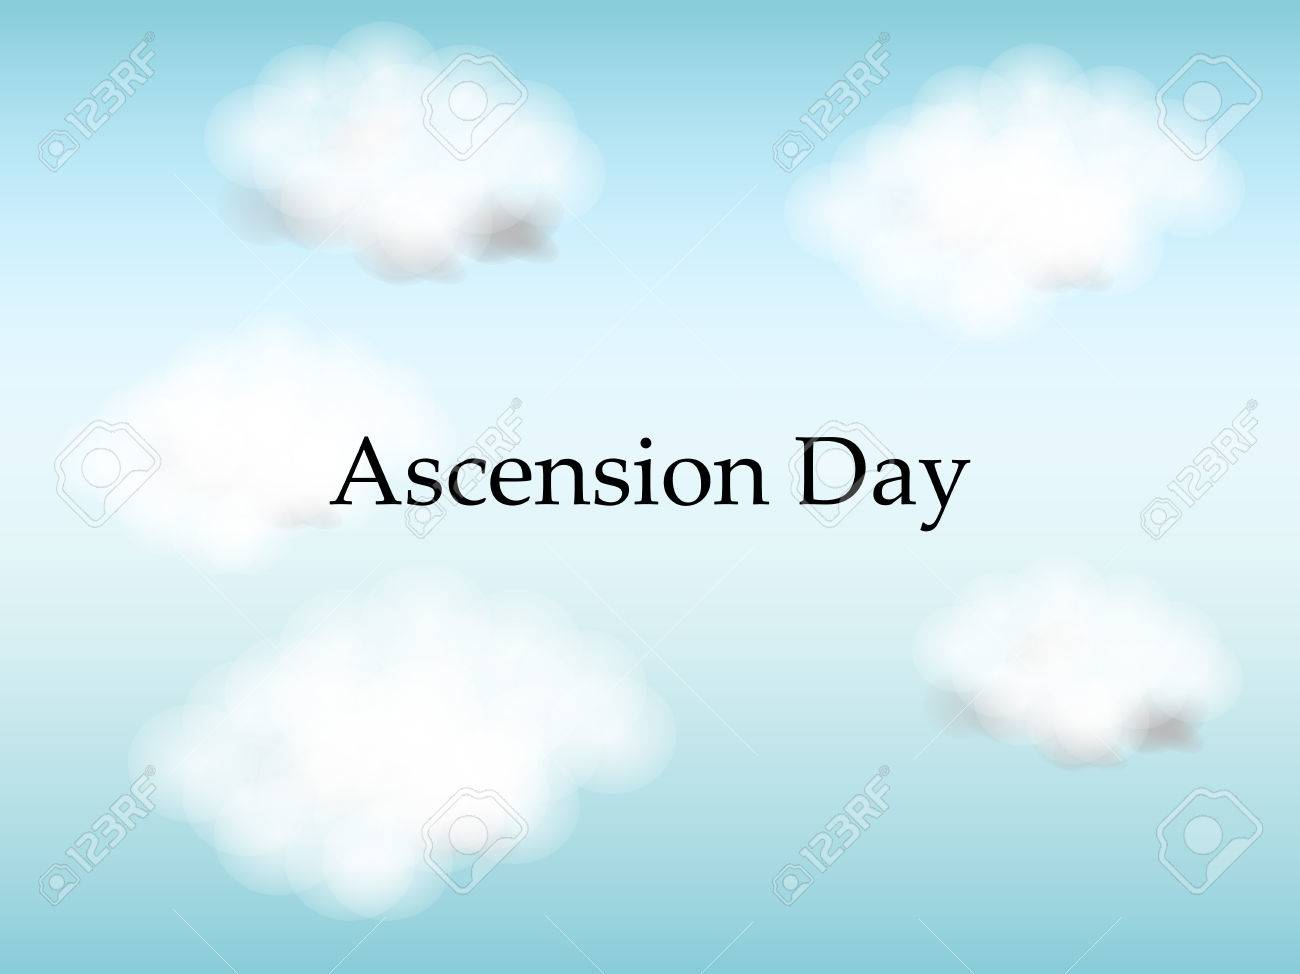 Ascension Day Background Royalty Cliparts Vectors And Stock 1300x974